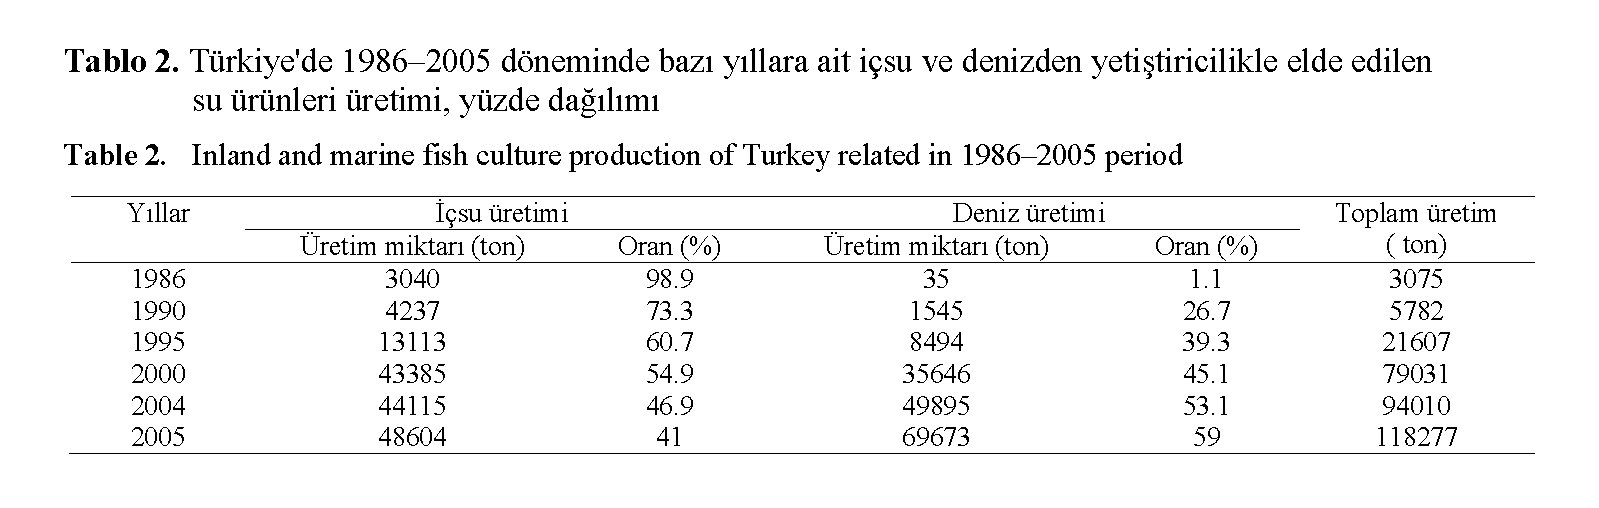 Fisheries-Sciences-Inland-marine-fish-culture-production-Turkey